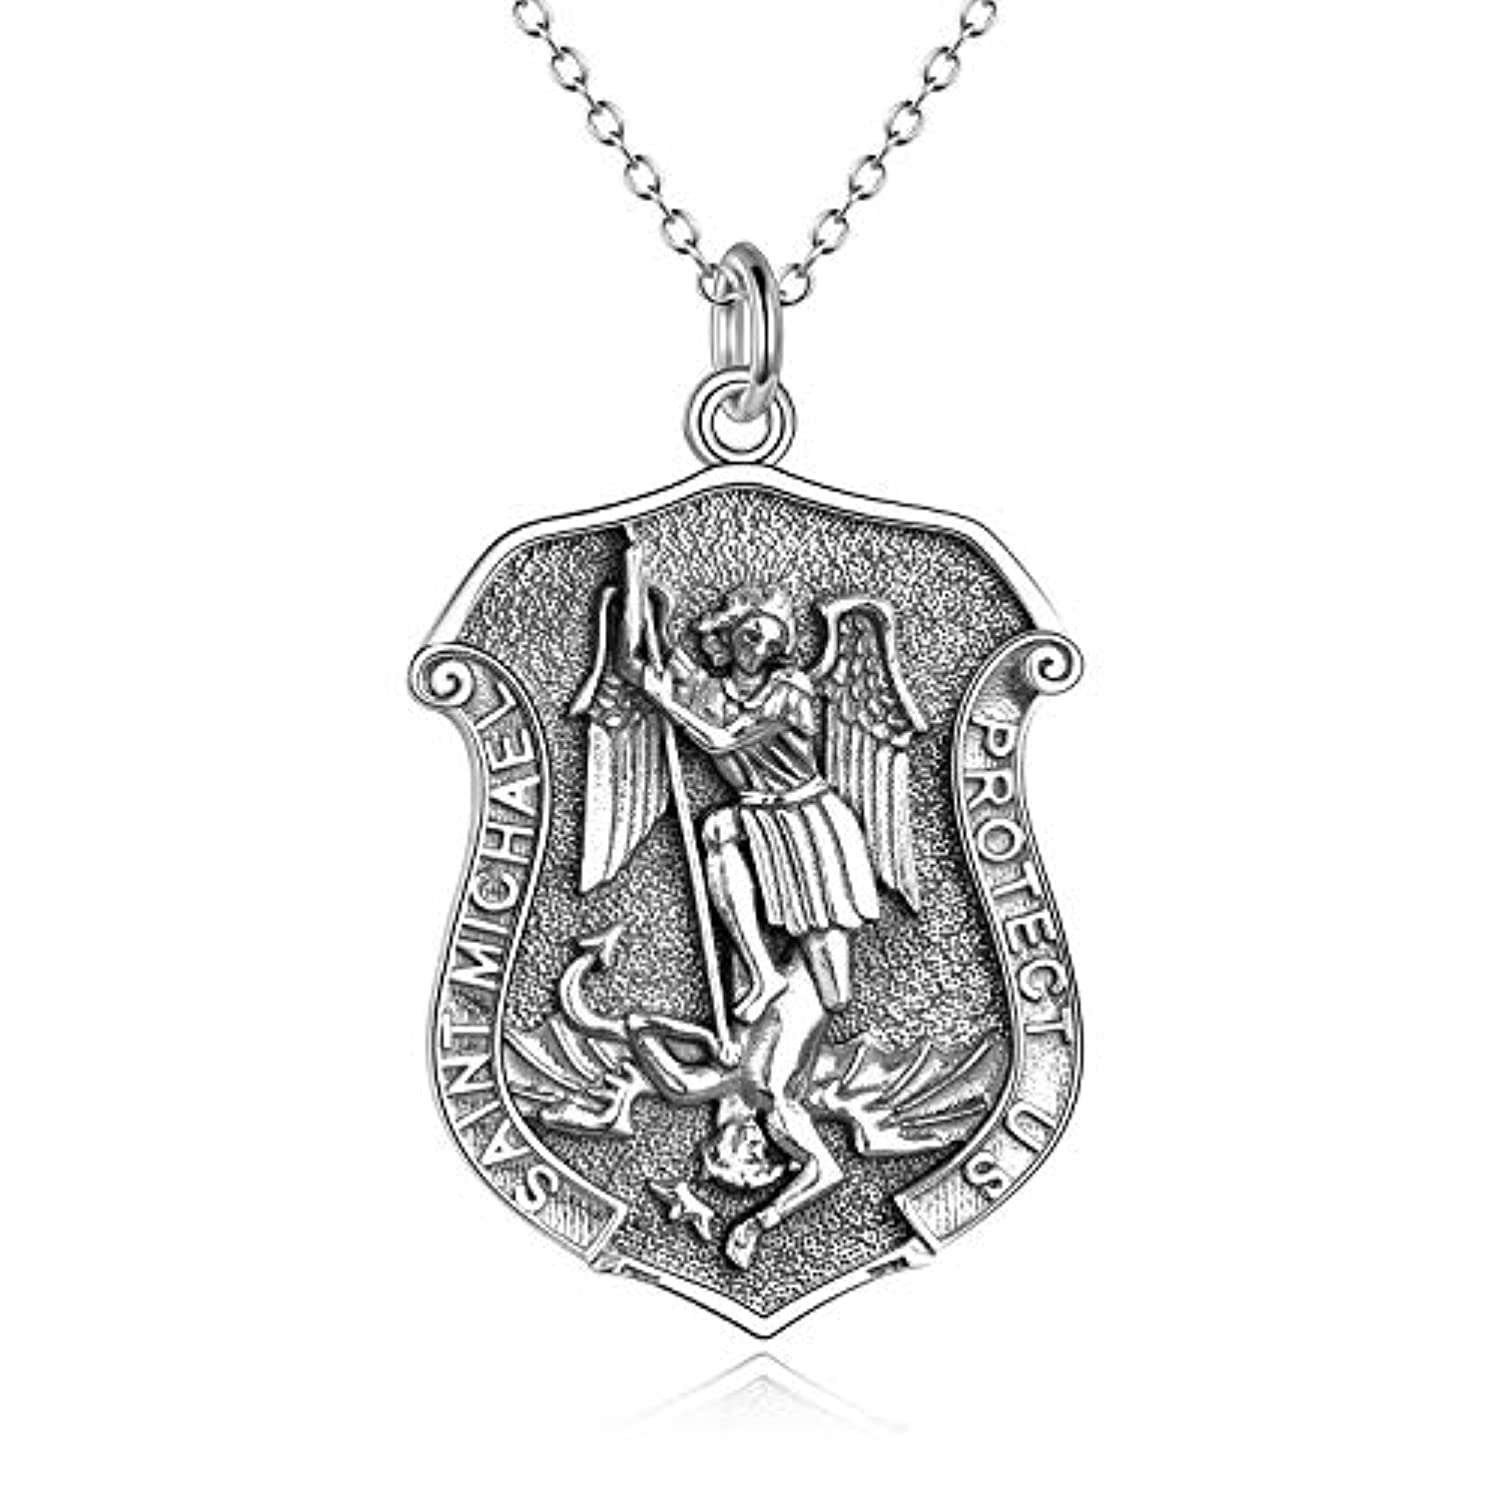 Saint Christopher Protect Pendant Necklace